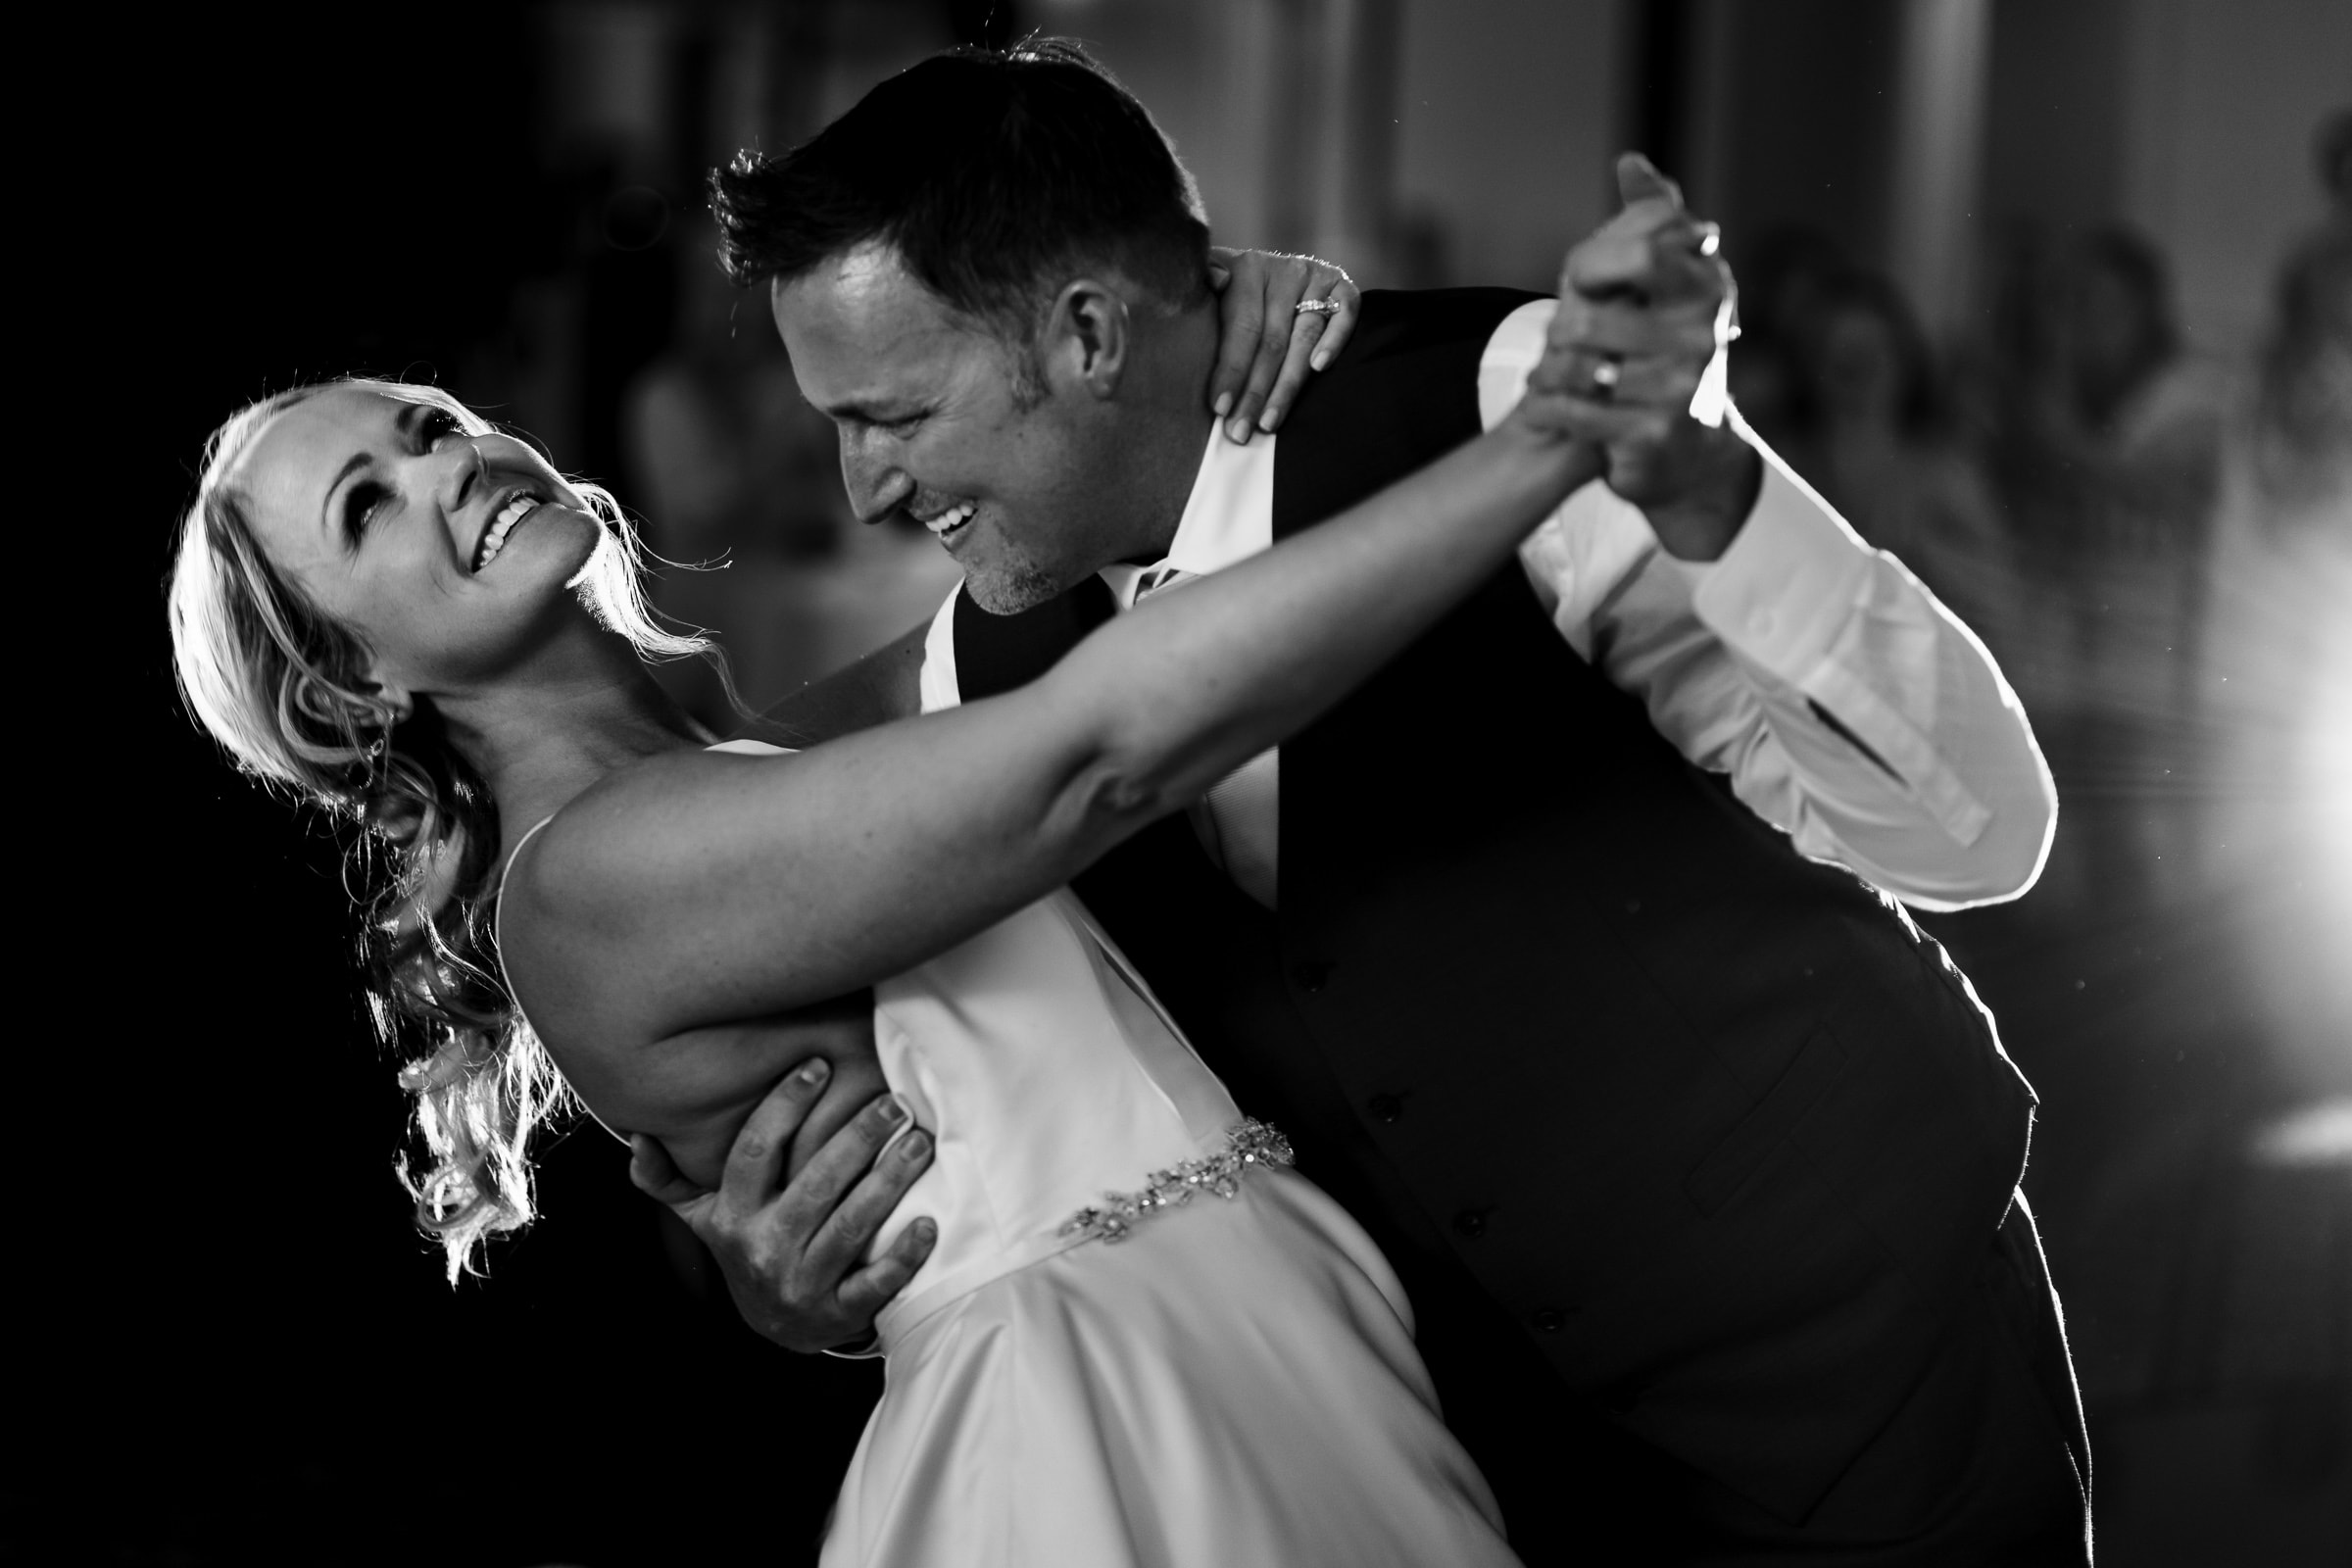 Bride and groom embracing during their dance at their Abernethy Center Portland Wedding reception in Oregon City